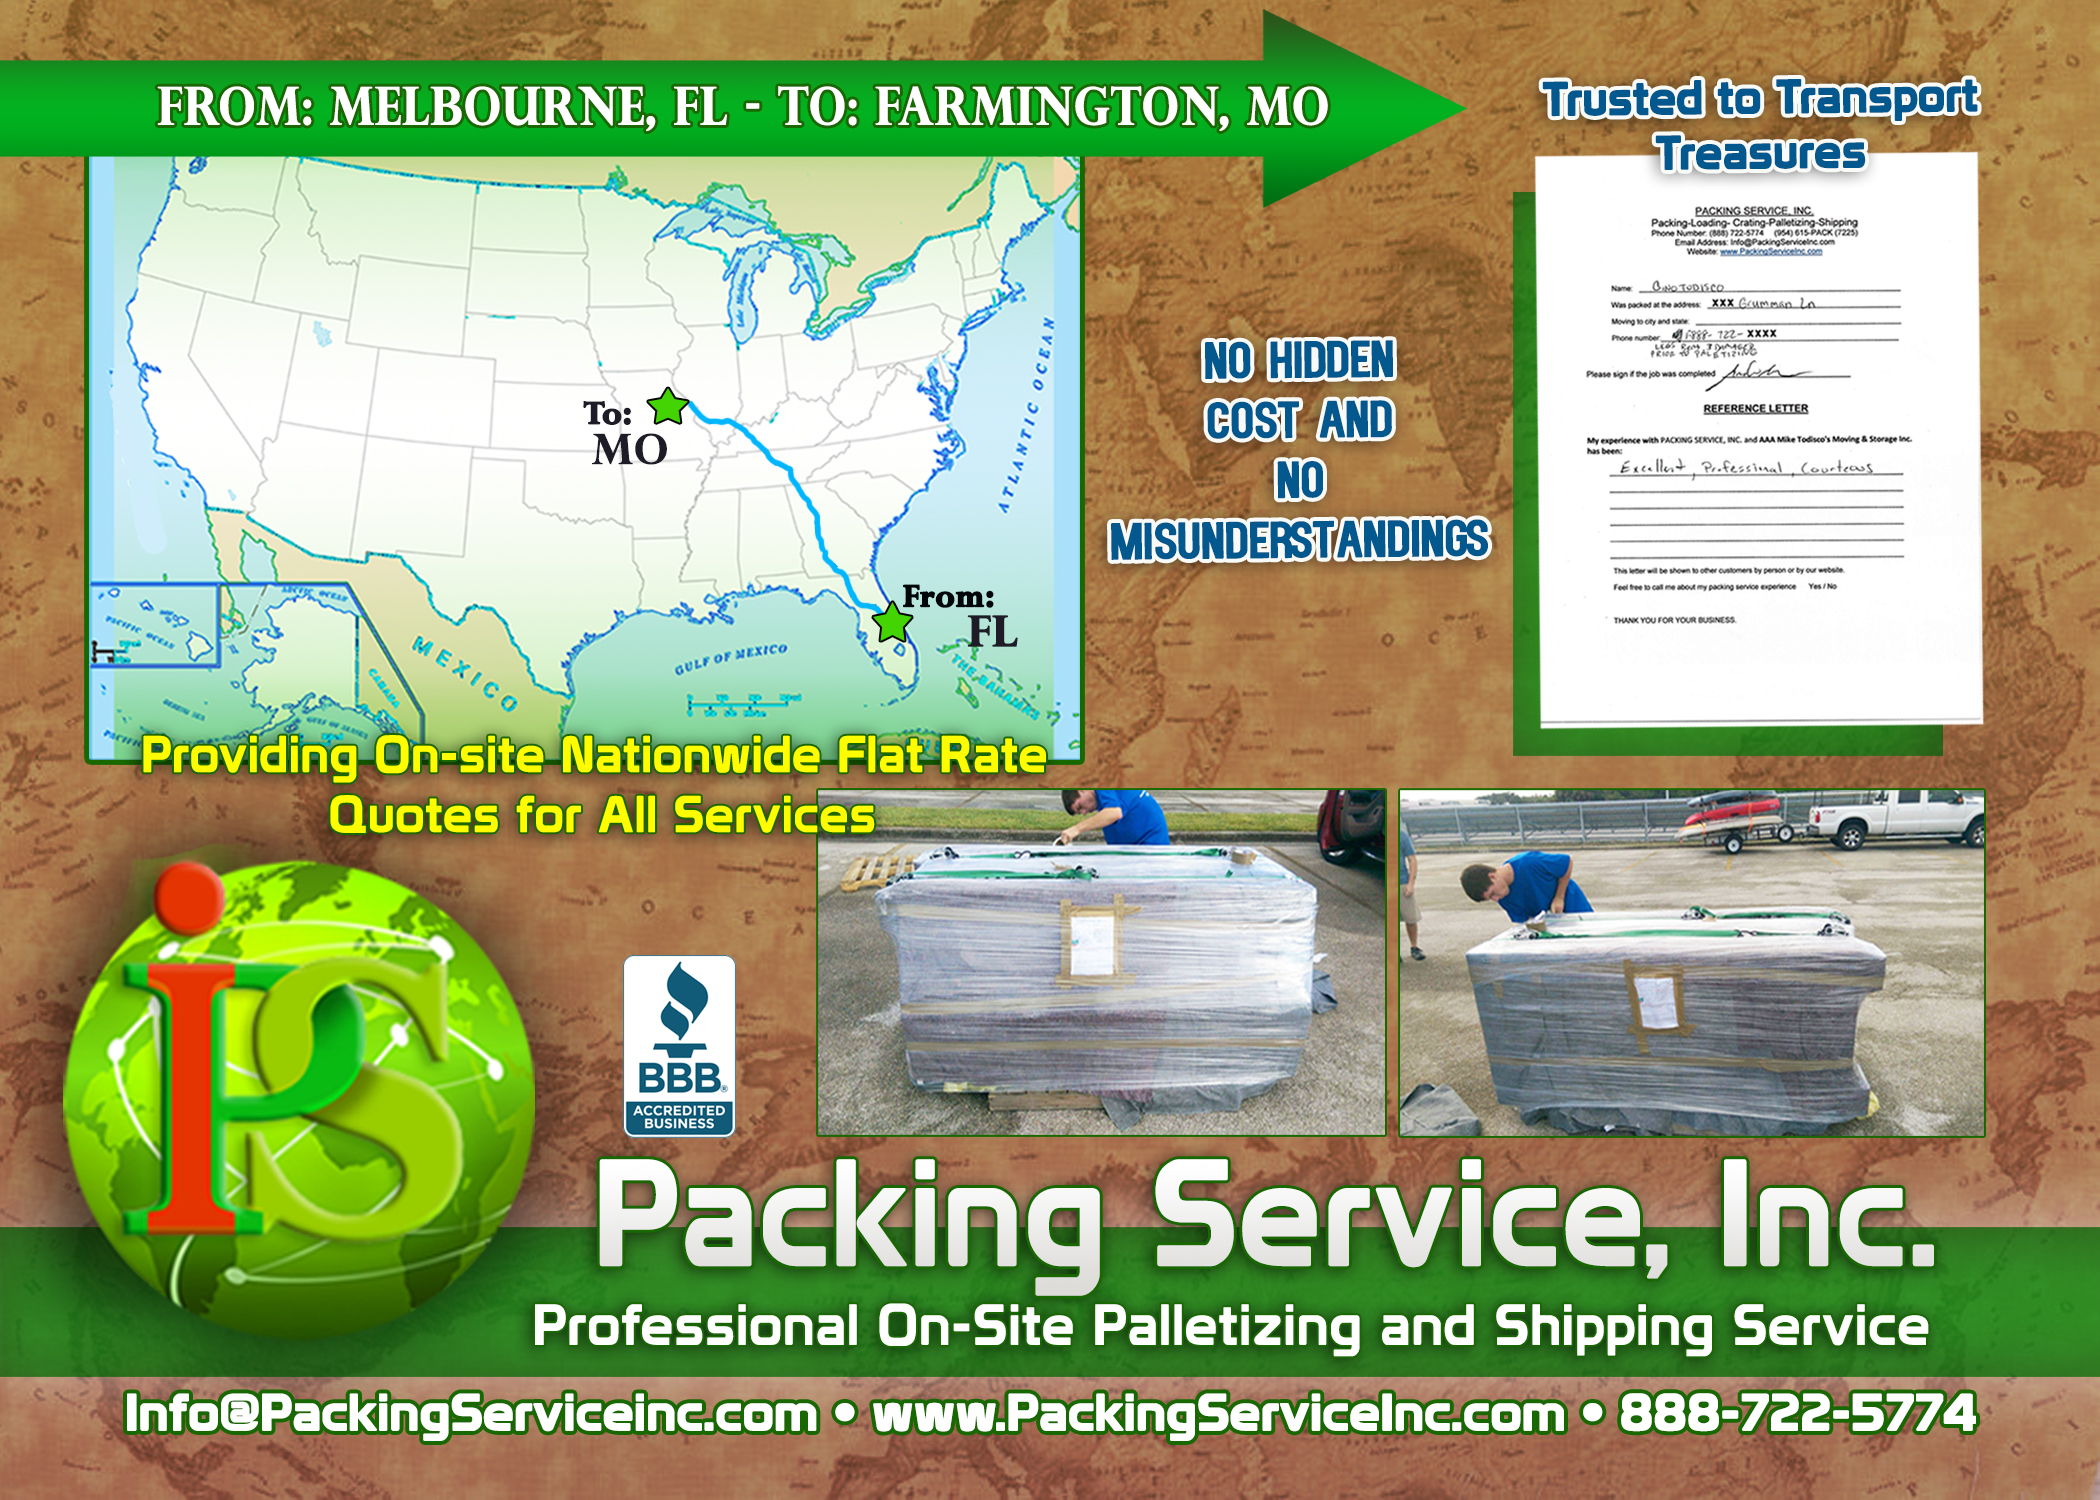 Wrapping 1 desk, Palletizing and shipping services from Florida to Missouri with Packing Service, Inc. - 973